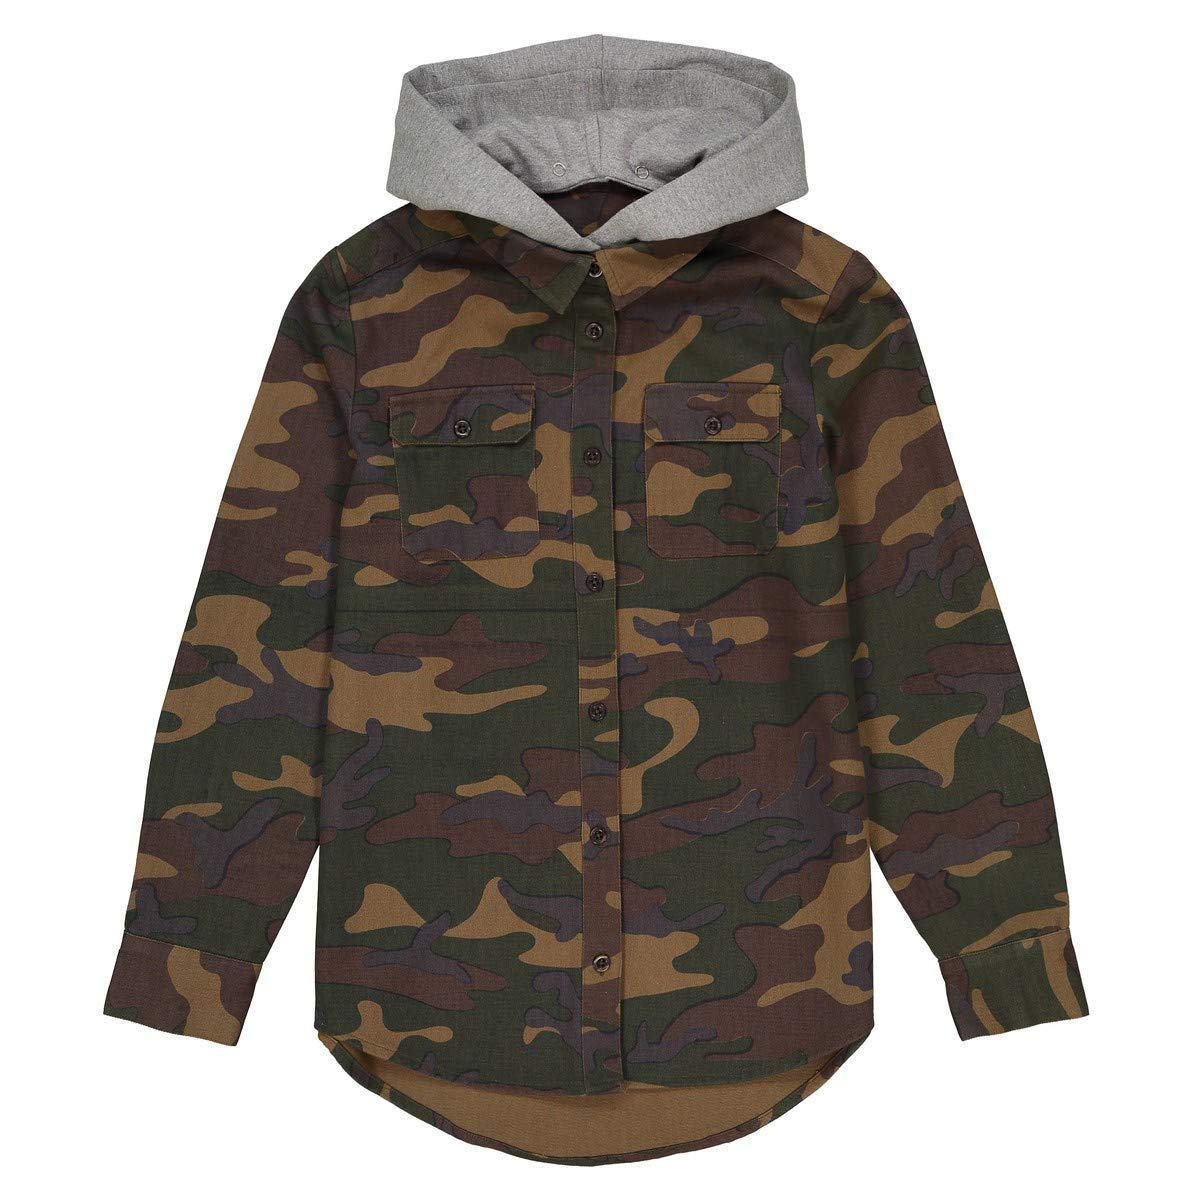 10-16 Years La Redoute Collections Big Boys Camouflage Print Hooded Shirt